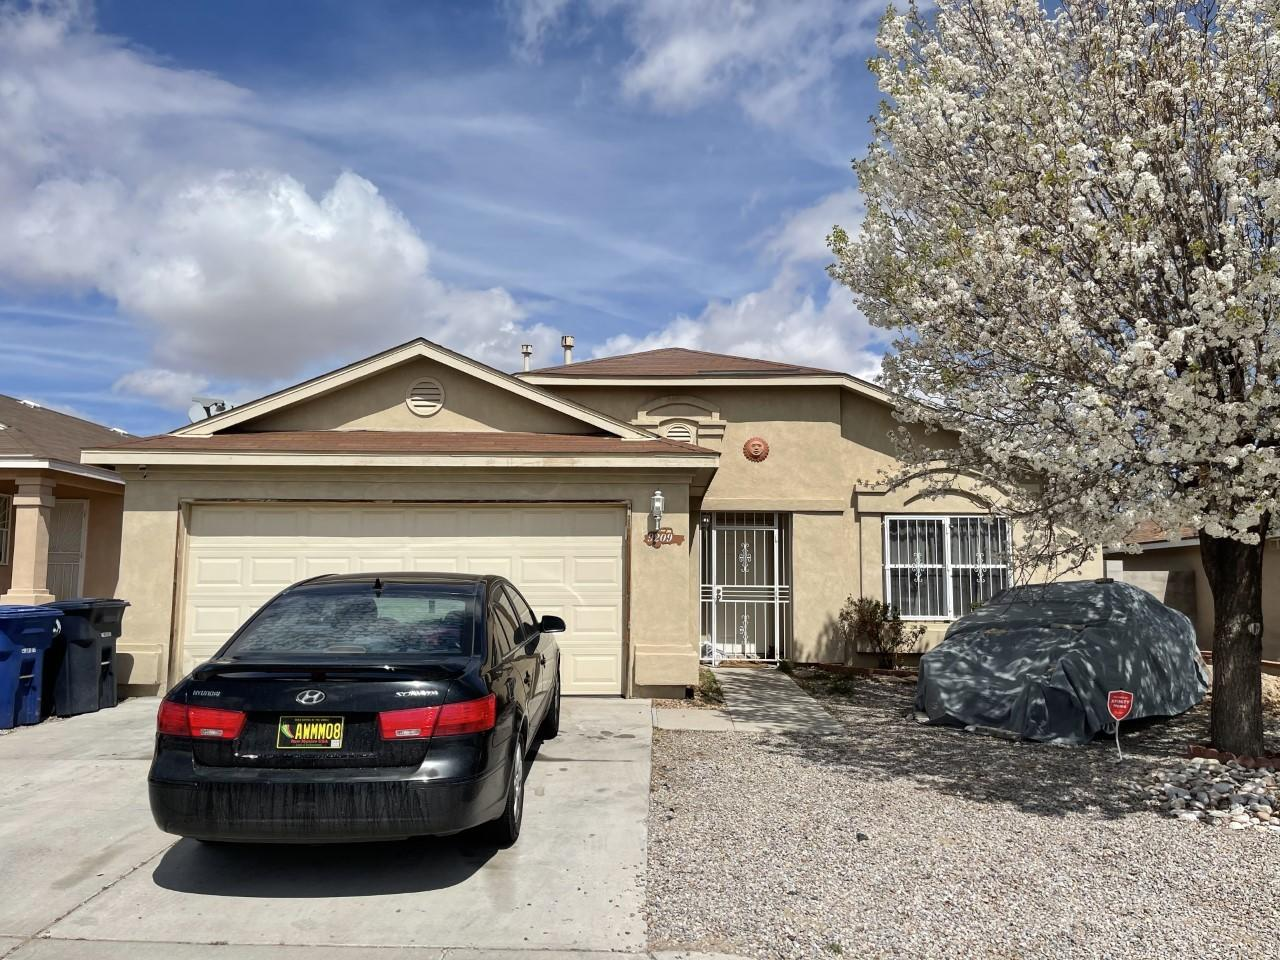 Great home with new roof, stucco will be replaced in whole house, lots of tile, open floor plan. Right across from the park, home is rented.